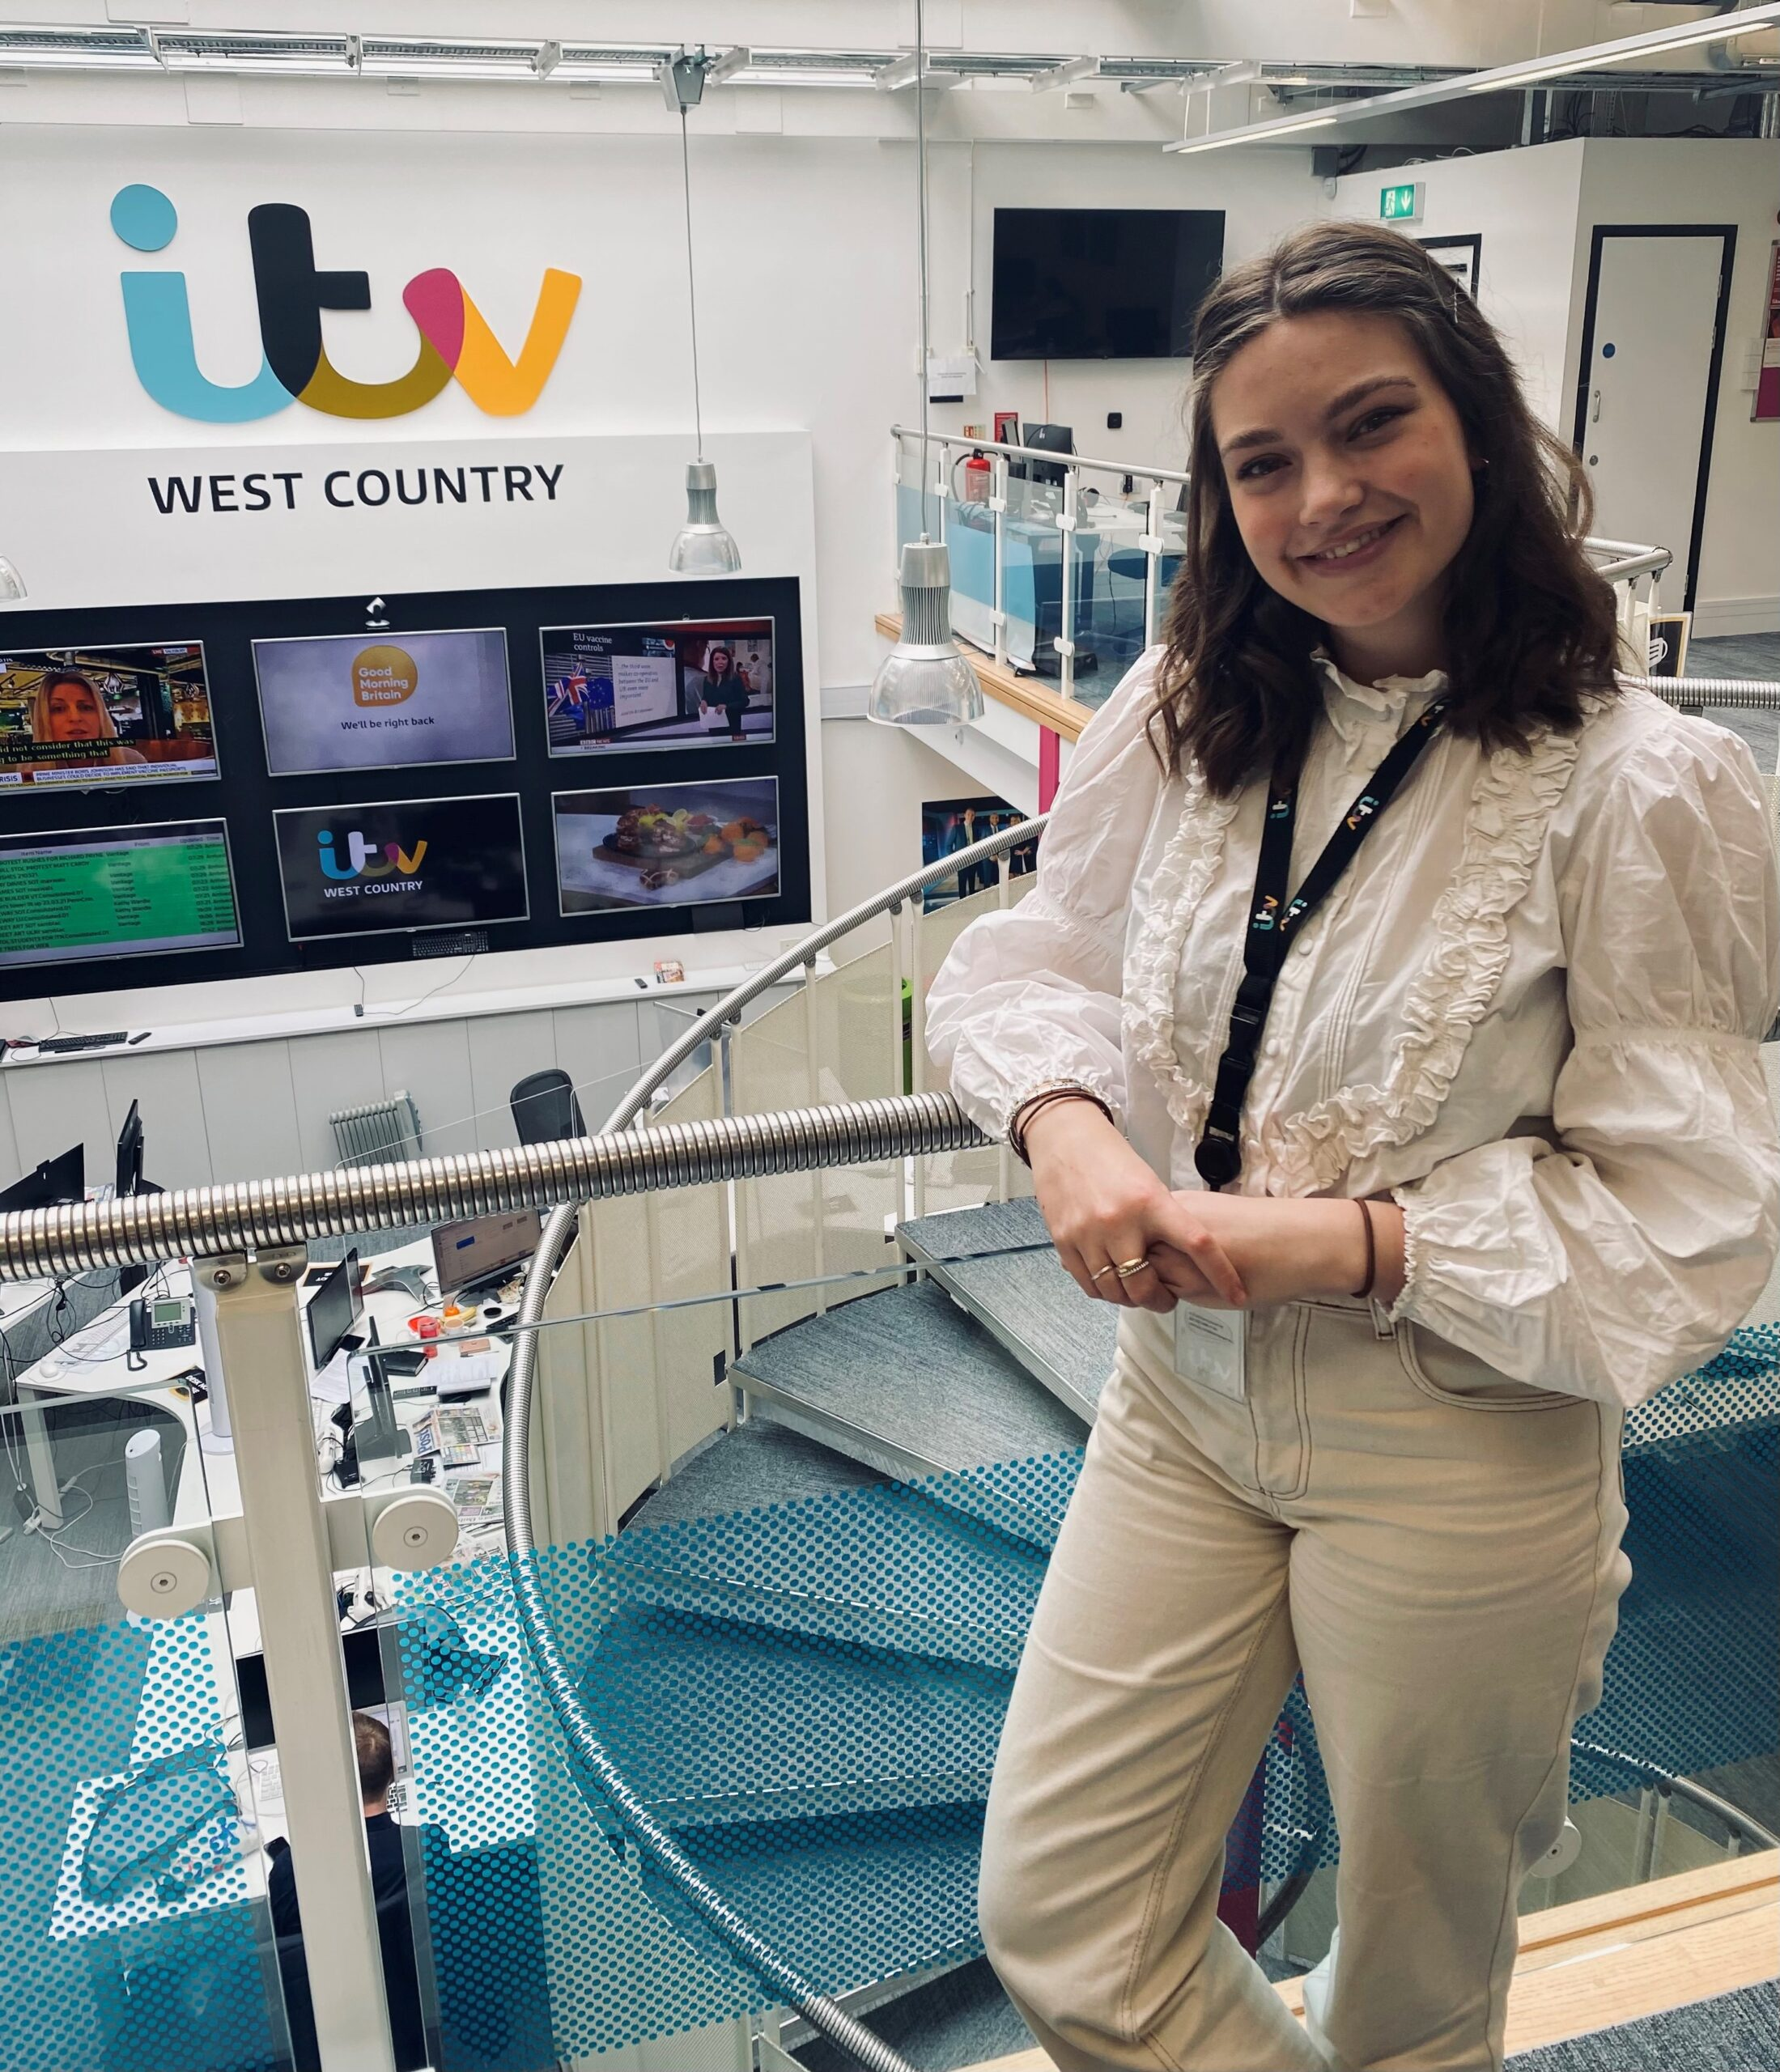 Siri in the ITV West Country newsroom